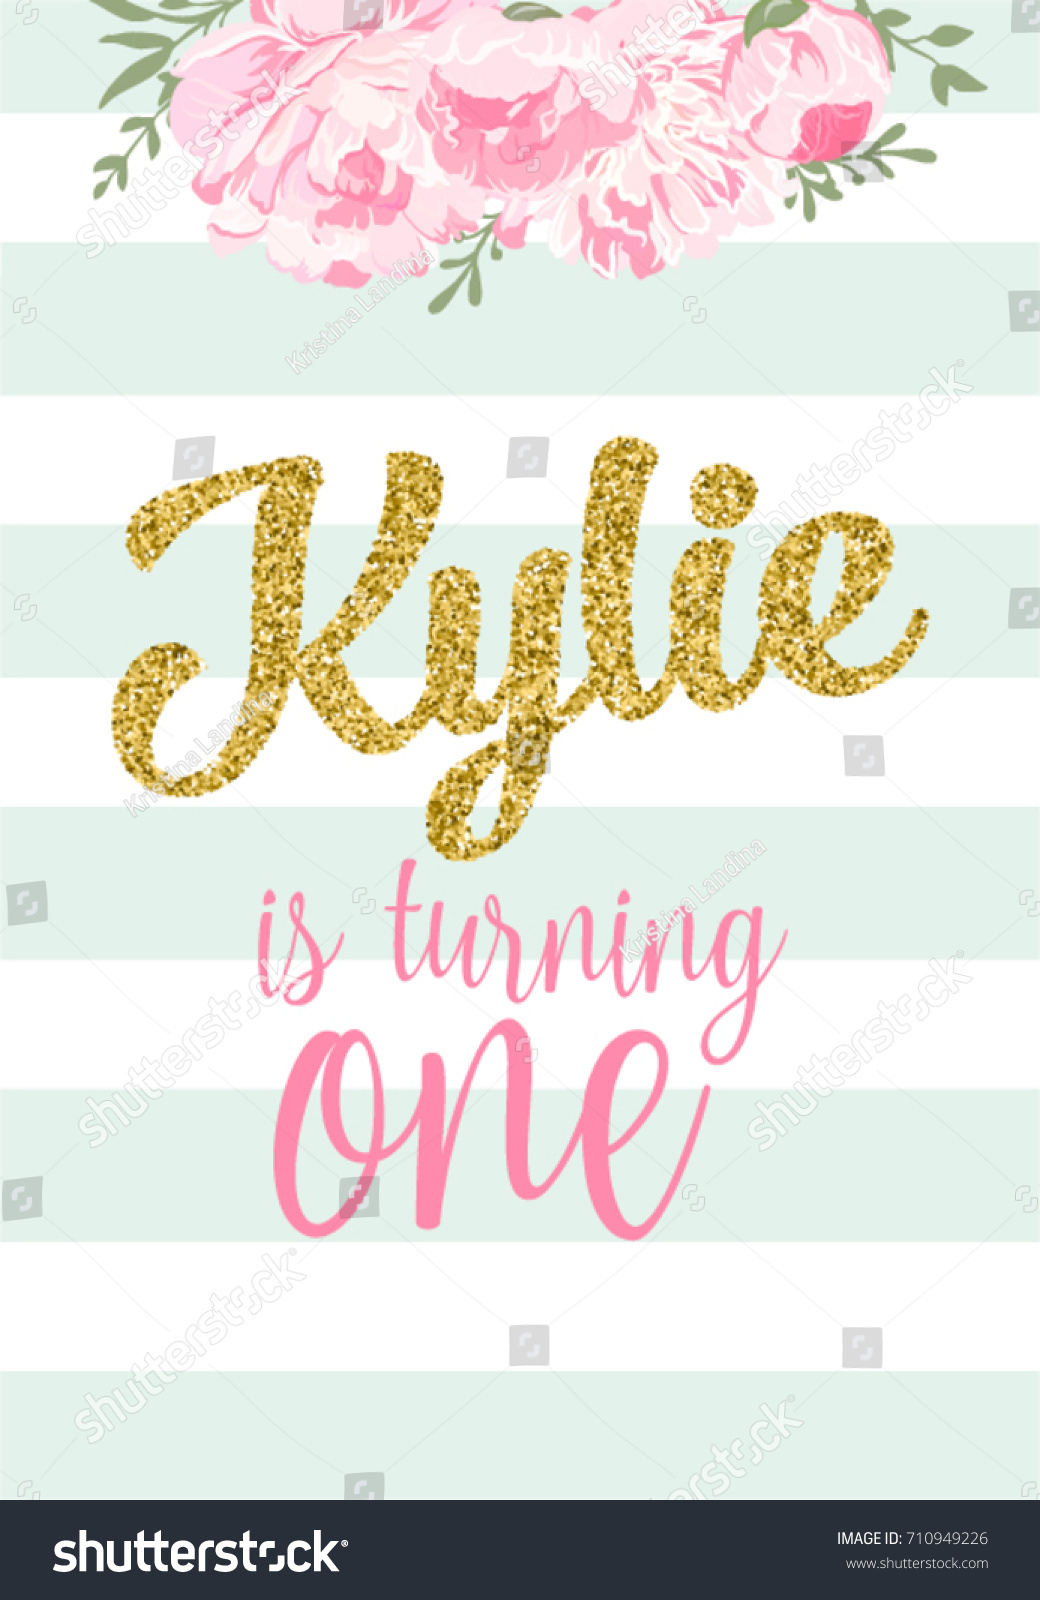 First Birthday Party Invitation Girl Kylie Image Vectorielle De